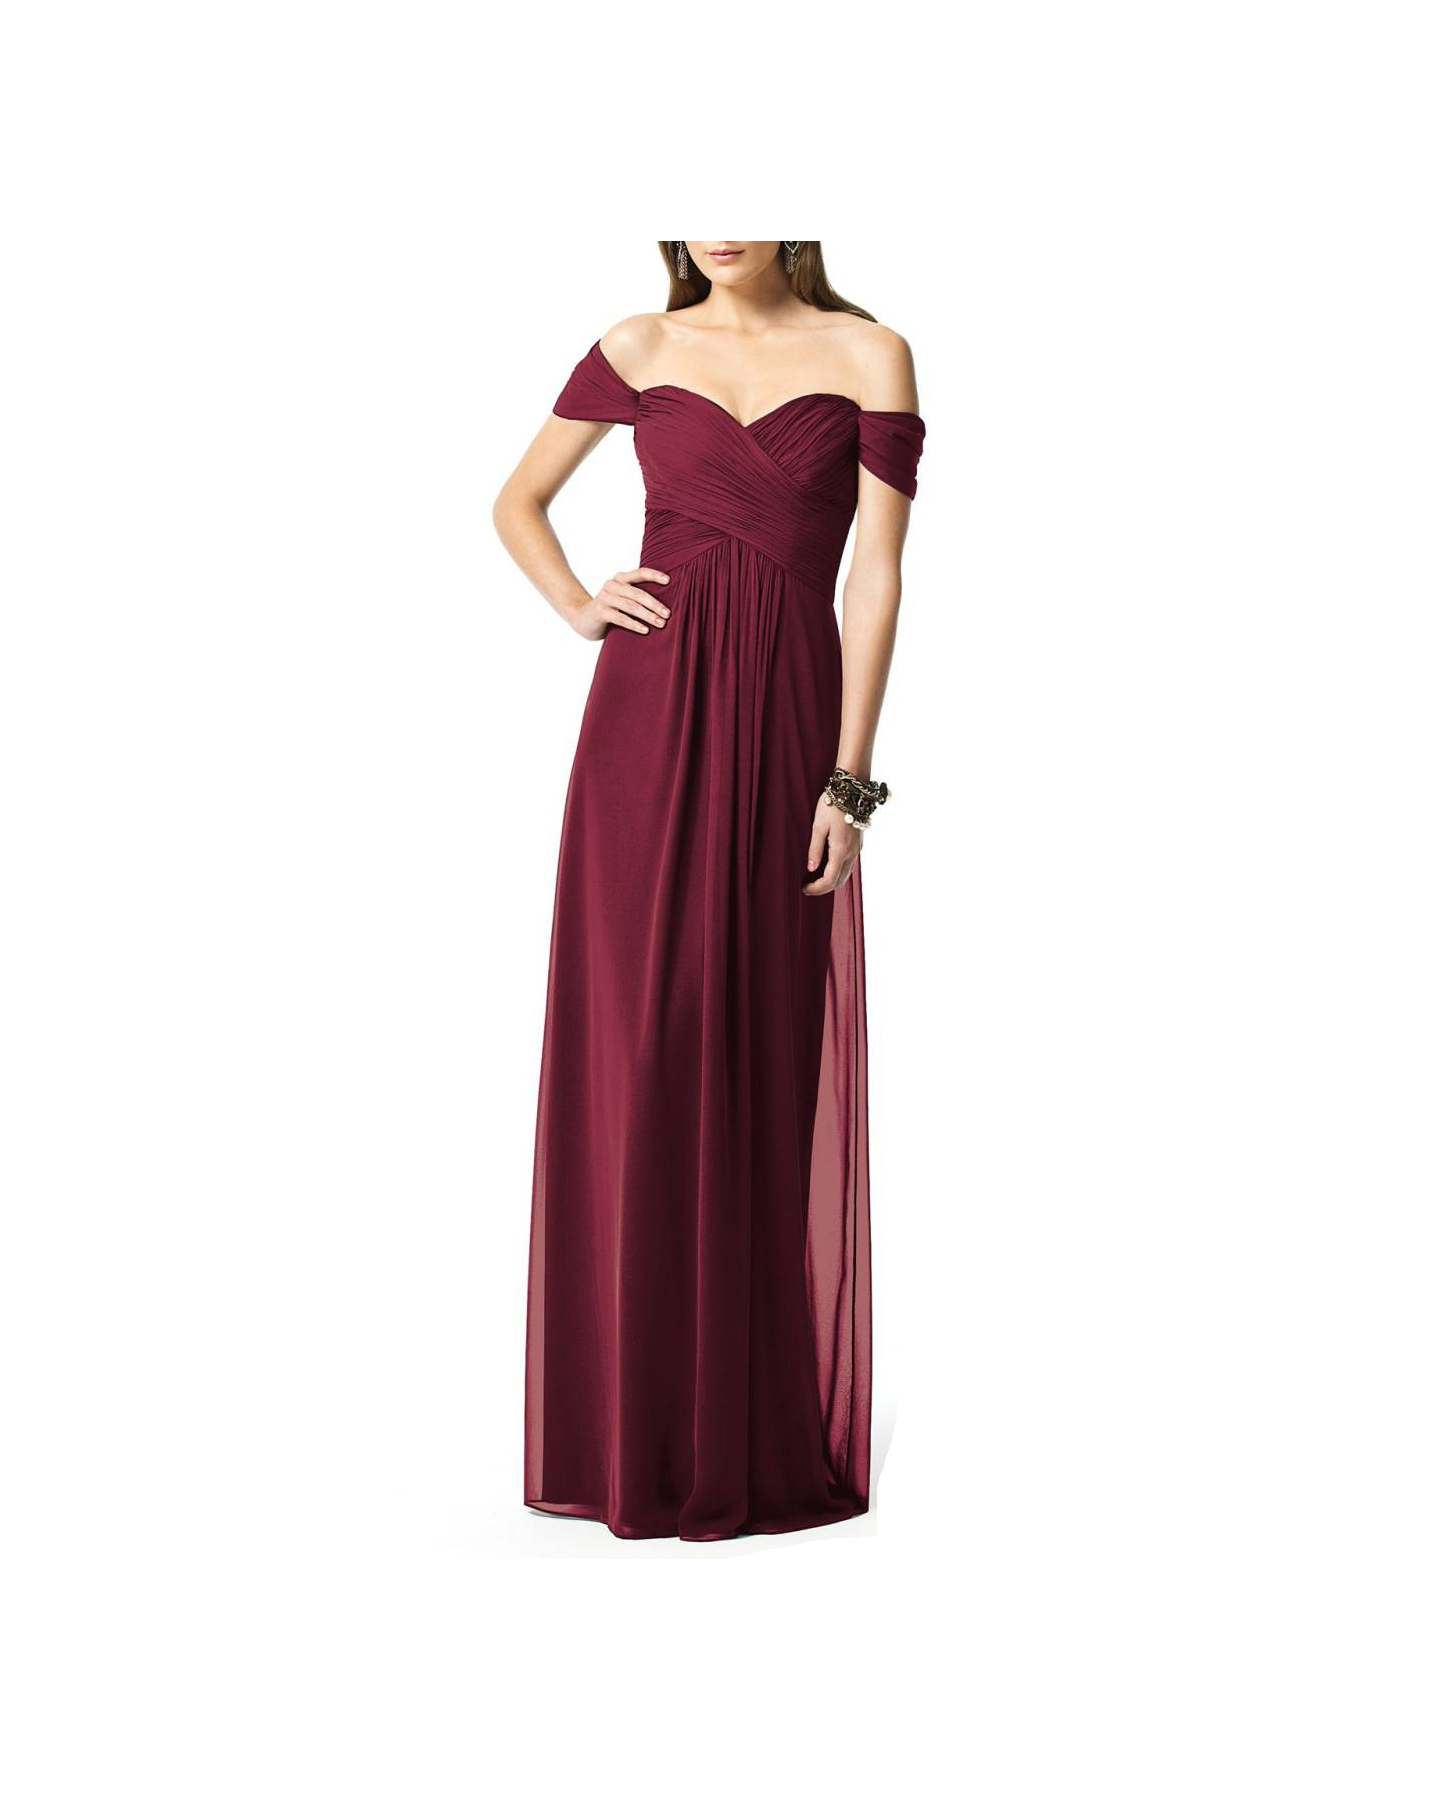 f3c9f244ea1 14 Bridesmaid Dresses That Look Gorgeous on Every Body Shape